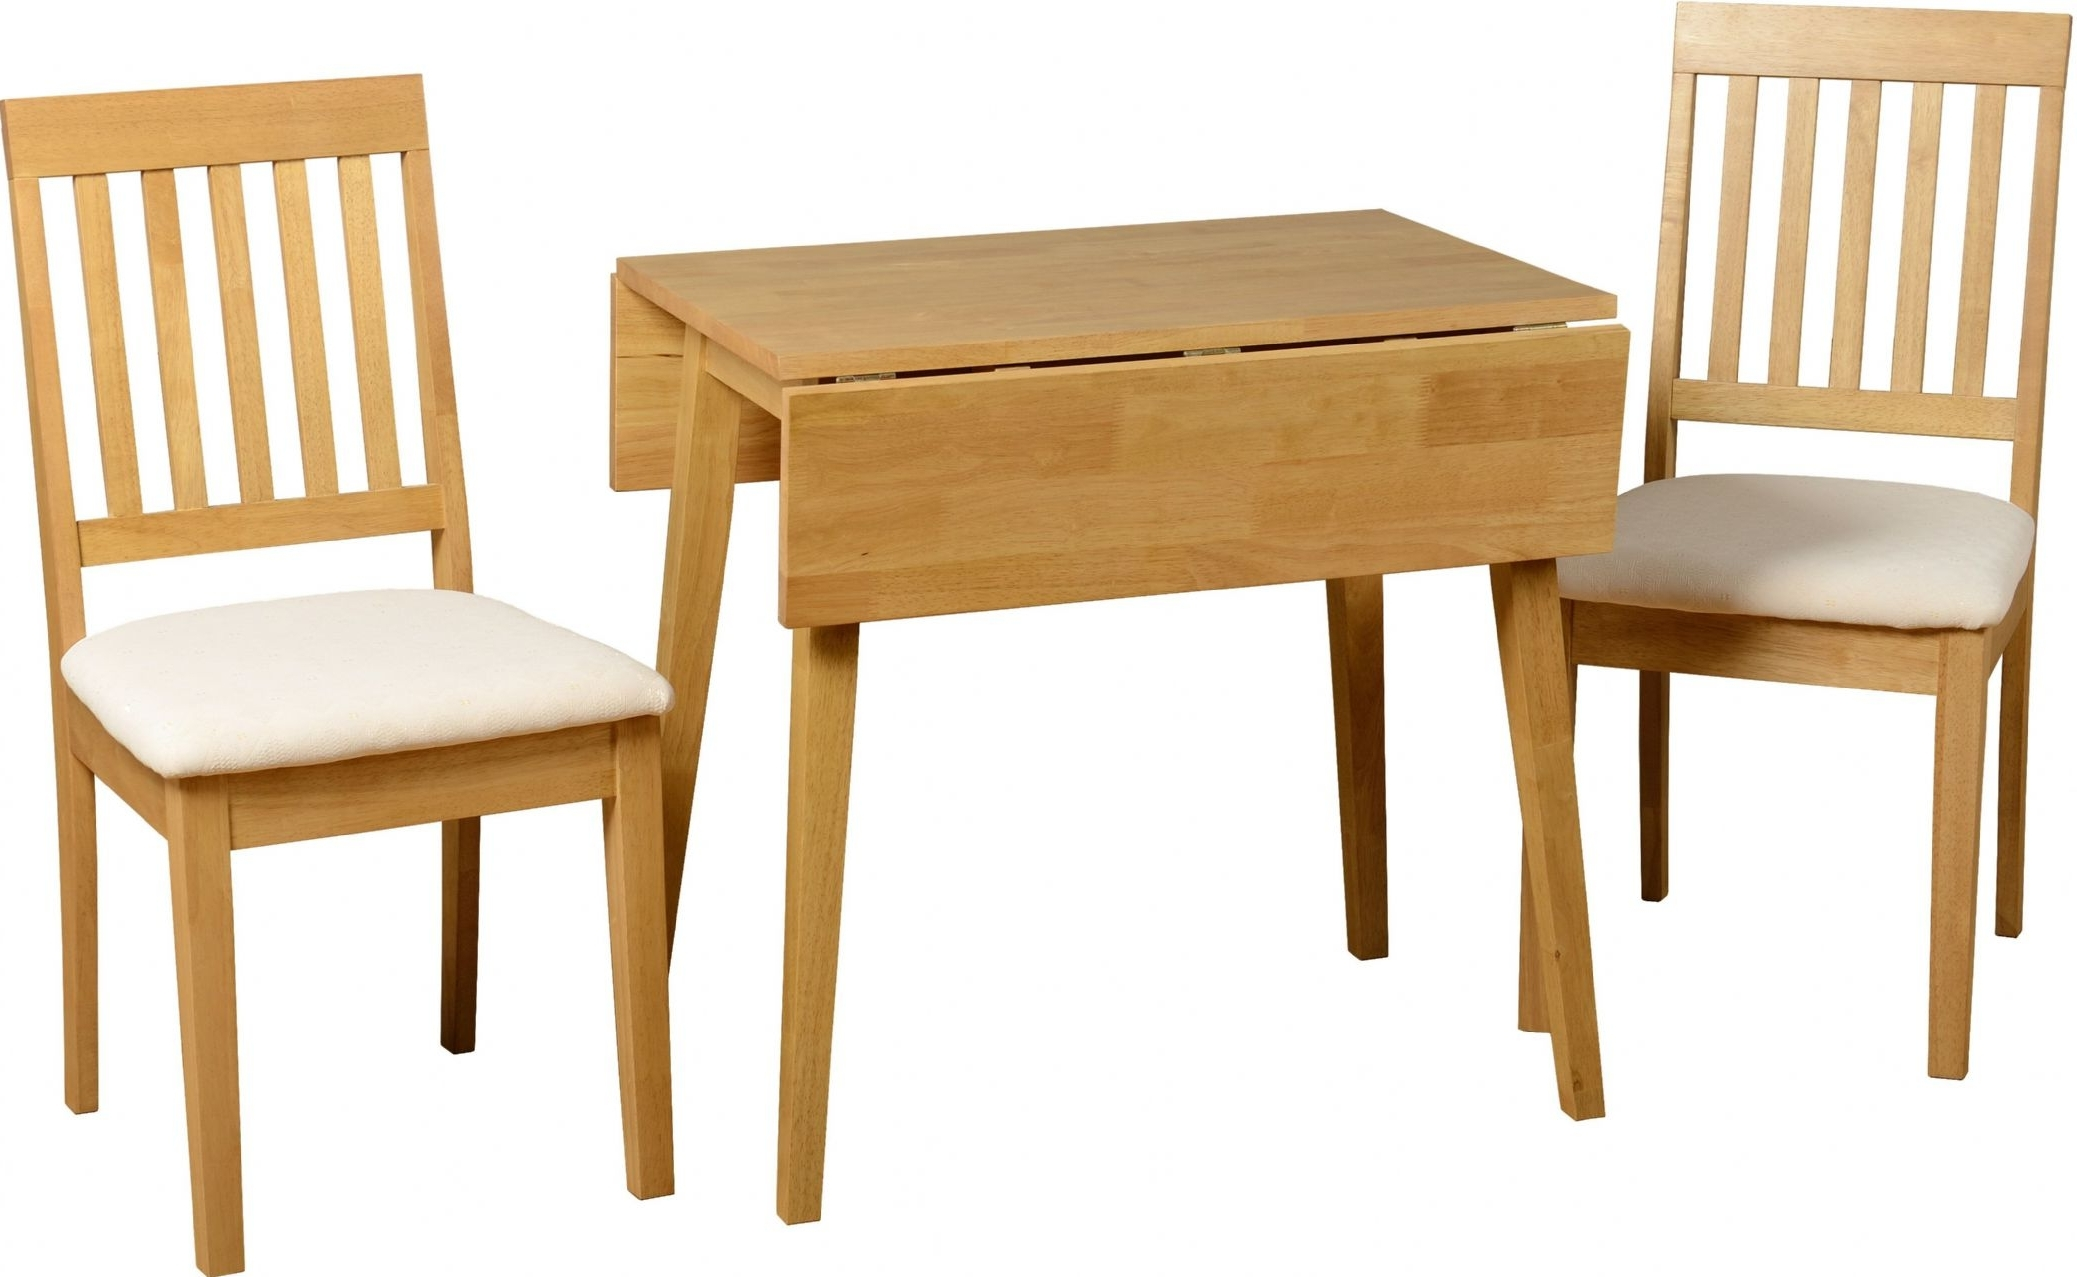 small folding kitchen table and chairs photo - 5